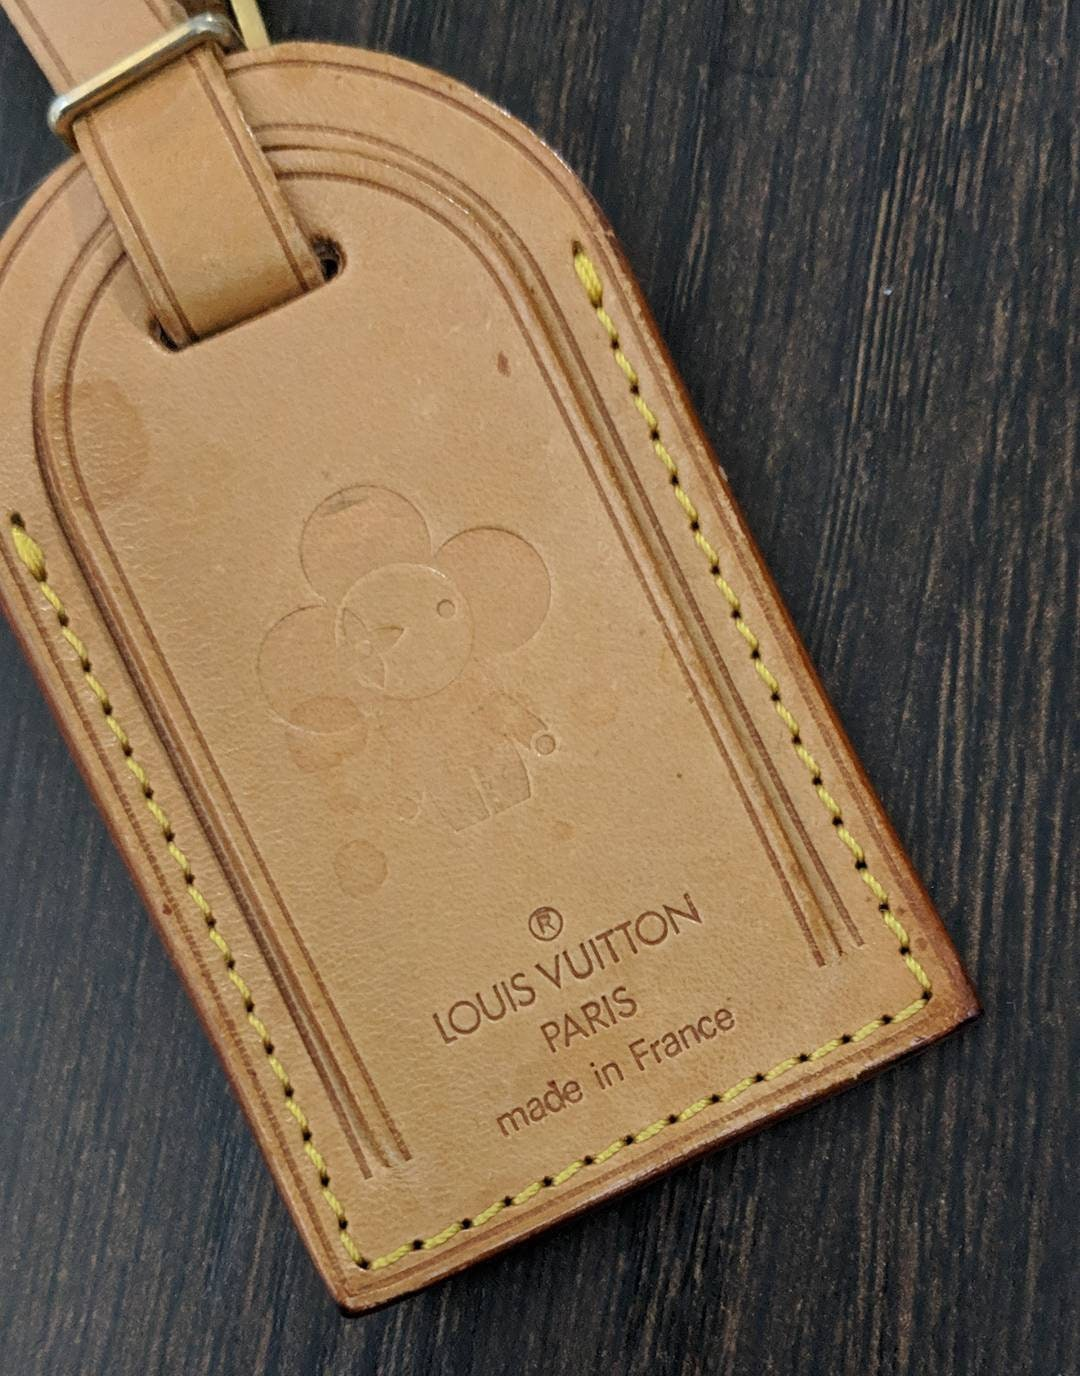 a61b686ba8ce Louis Vuitton name tag vivienne stamp - LV luggage Tag vivienne - vachetta  luggage tag - Lv luggage id tag - Lv travel tag - Lv vivienne